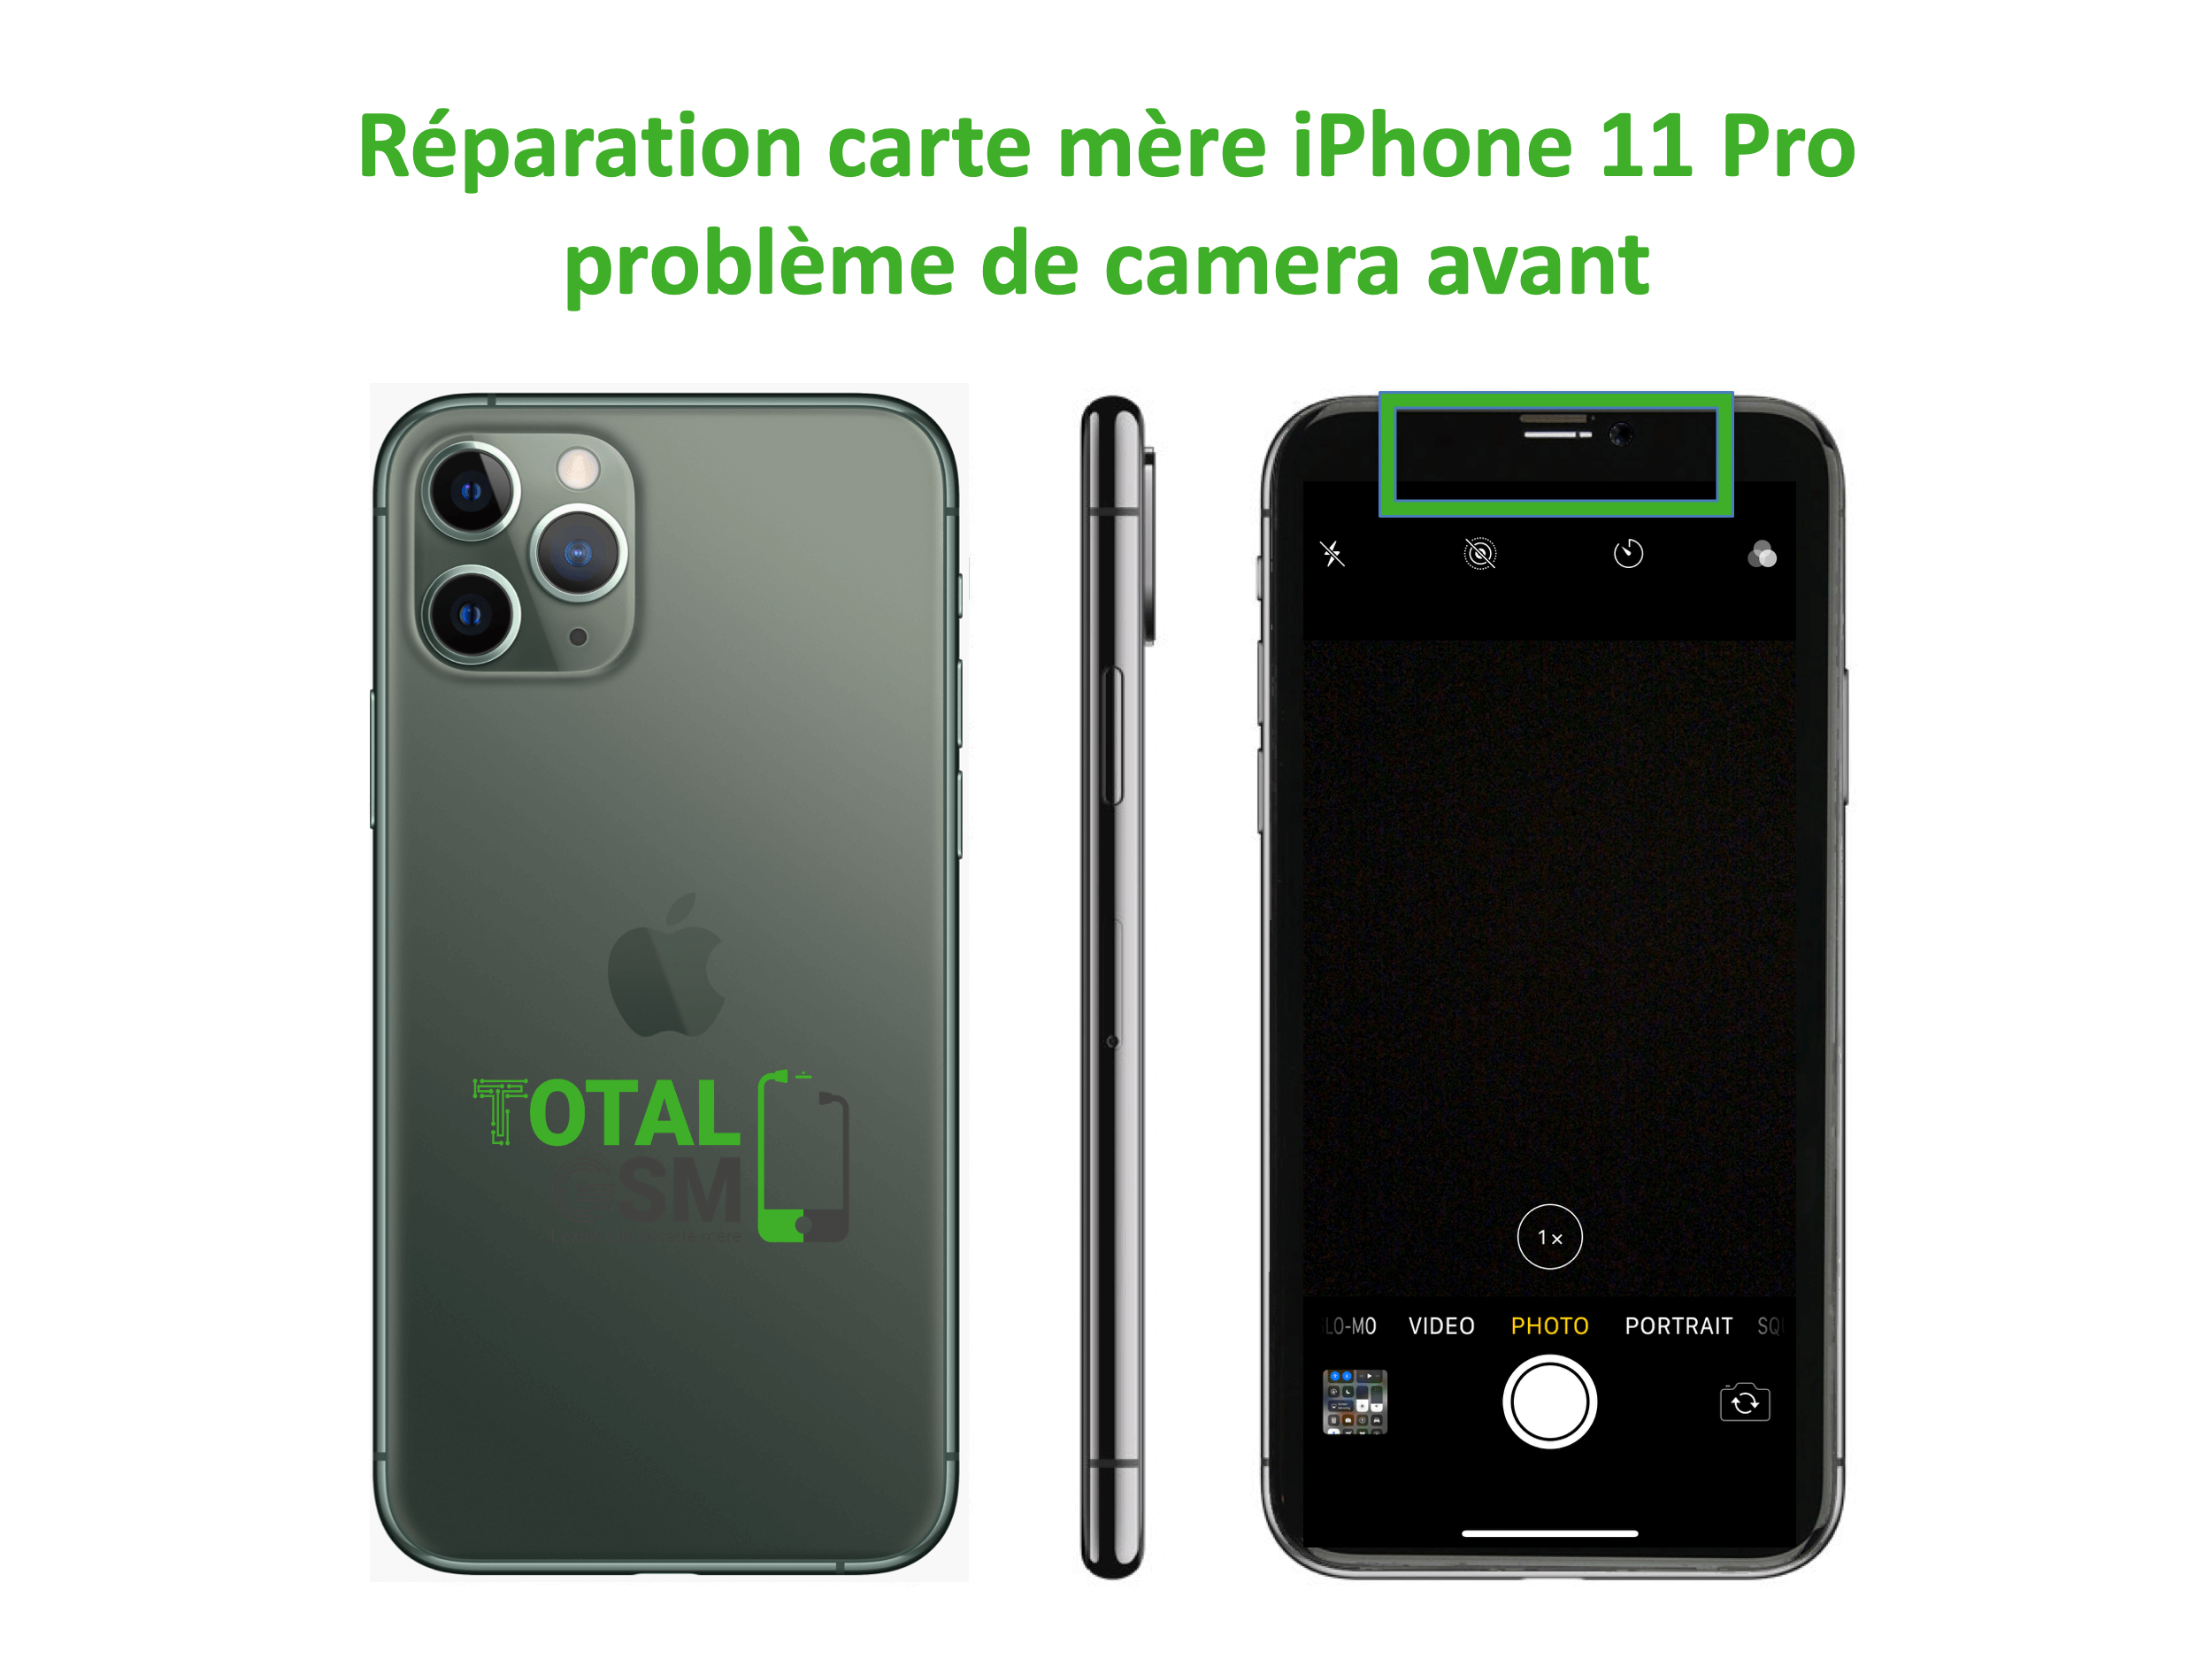 iPhone-11-pro-reparation-probleme-de-camera-avant